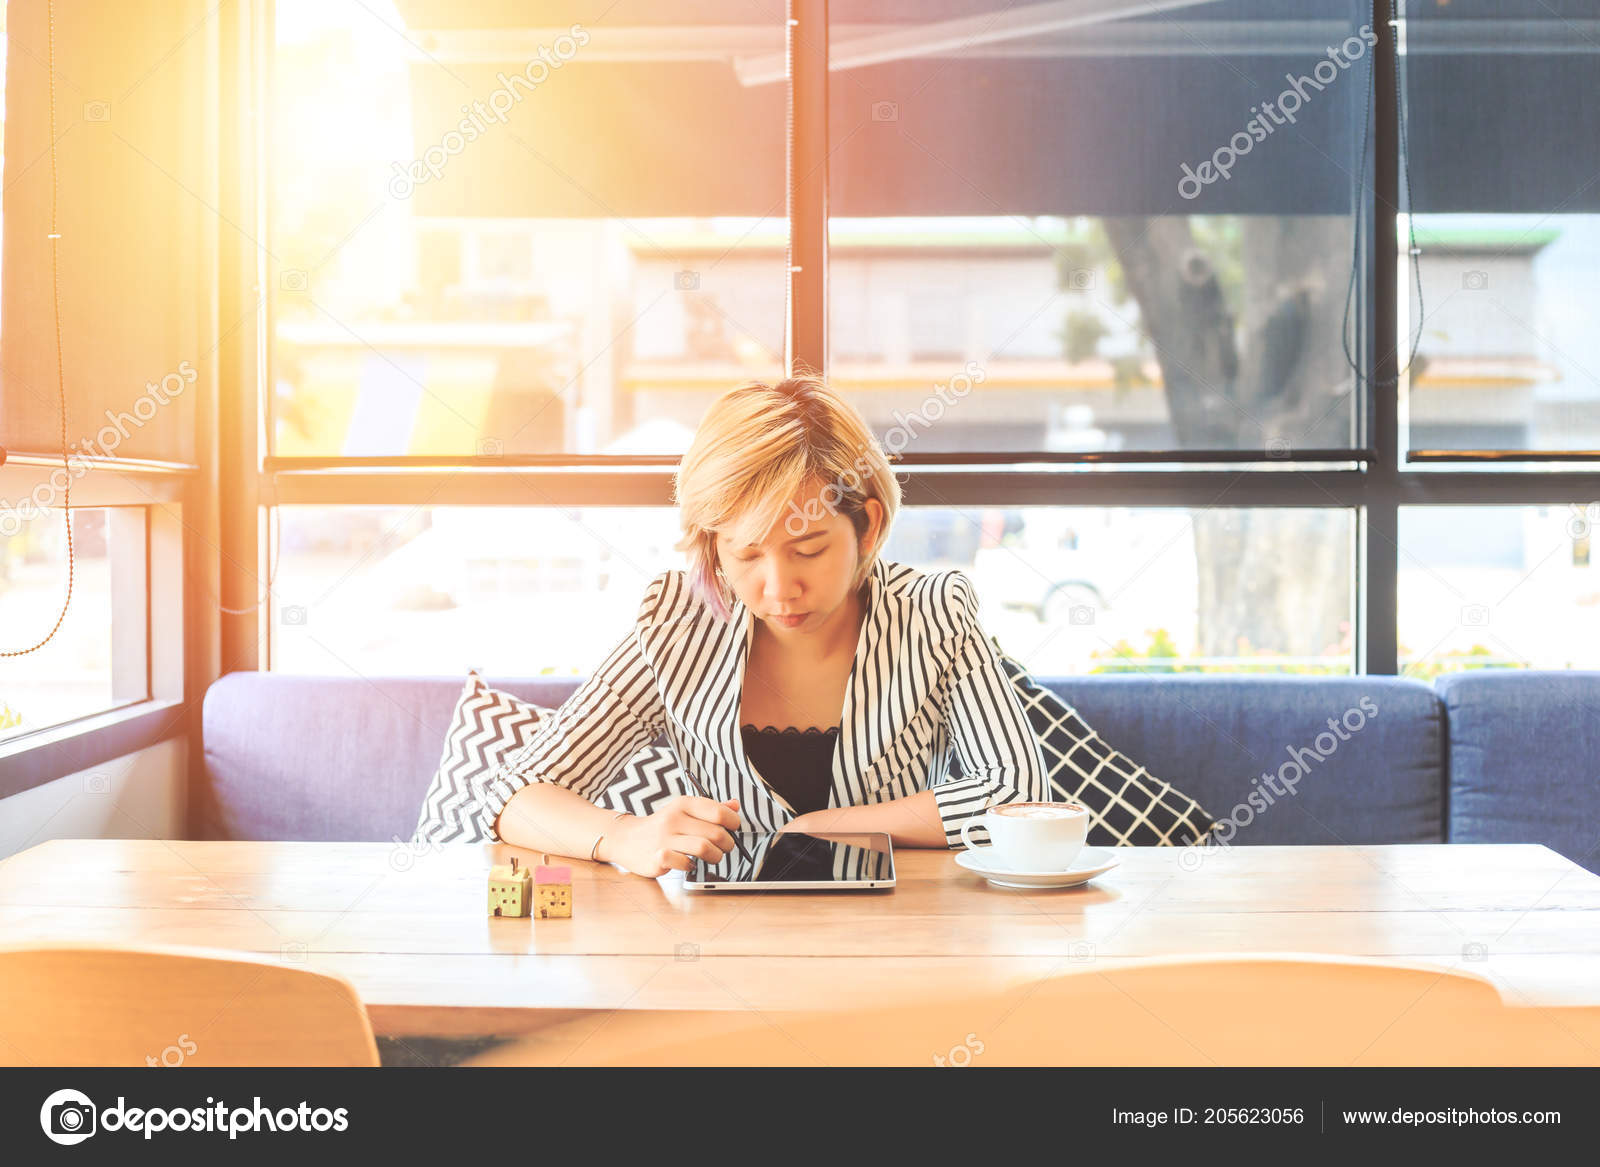 Tablet Küchenbrett Businesswomen Sitting Sofa Use Tablet Women Sitting Window Coffee